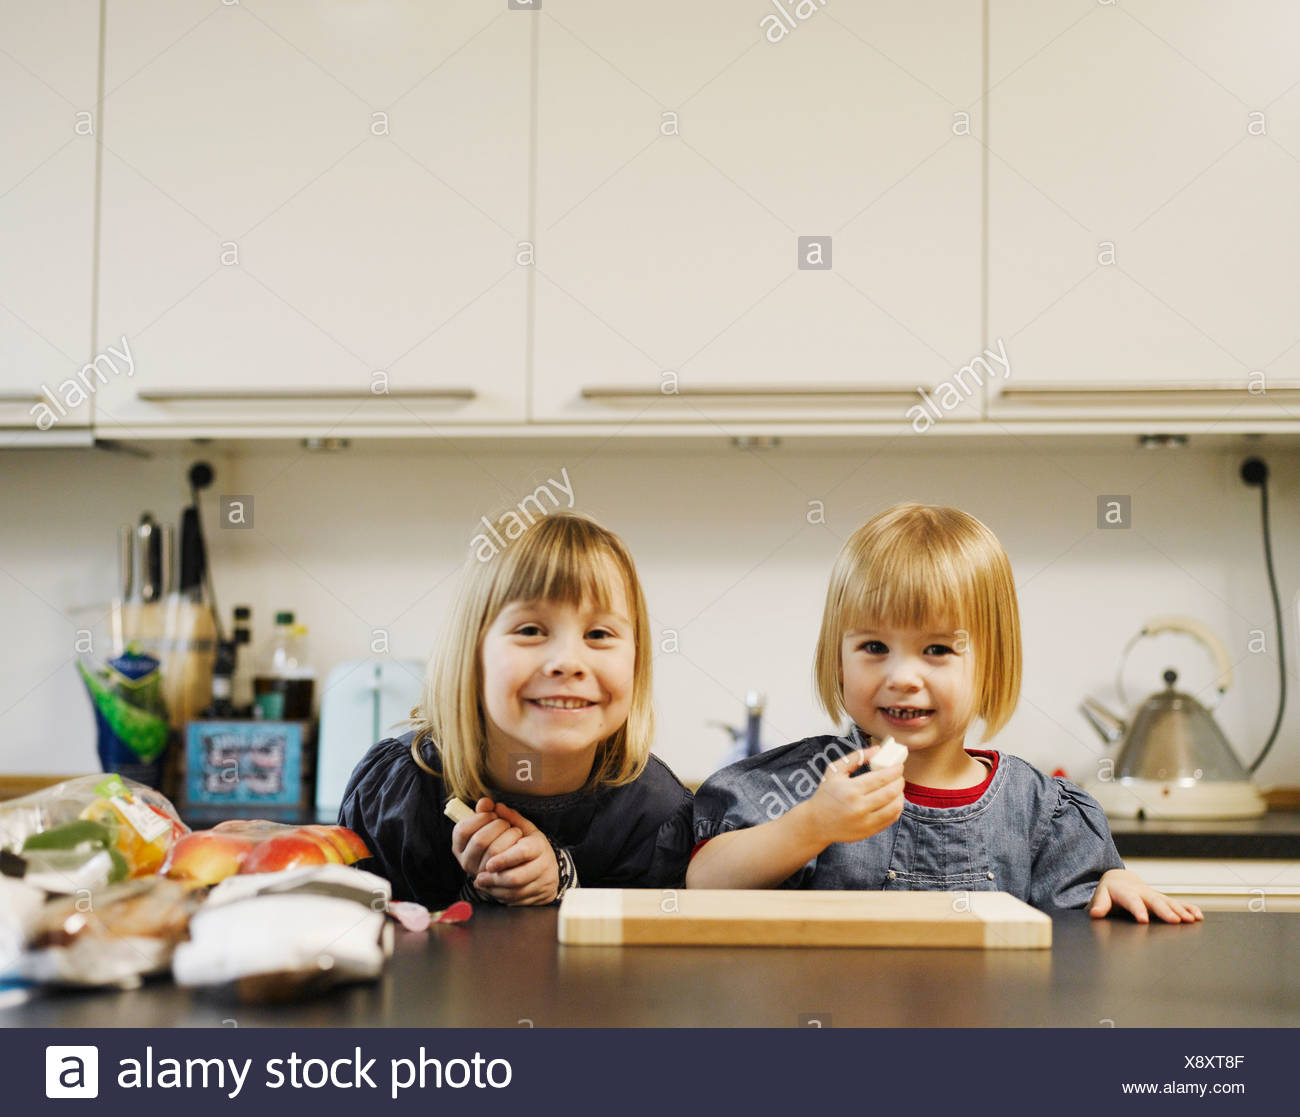 Smiling girls eating in kitchen - Stock Image